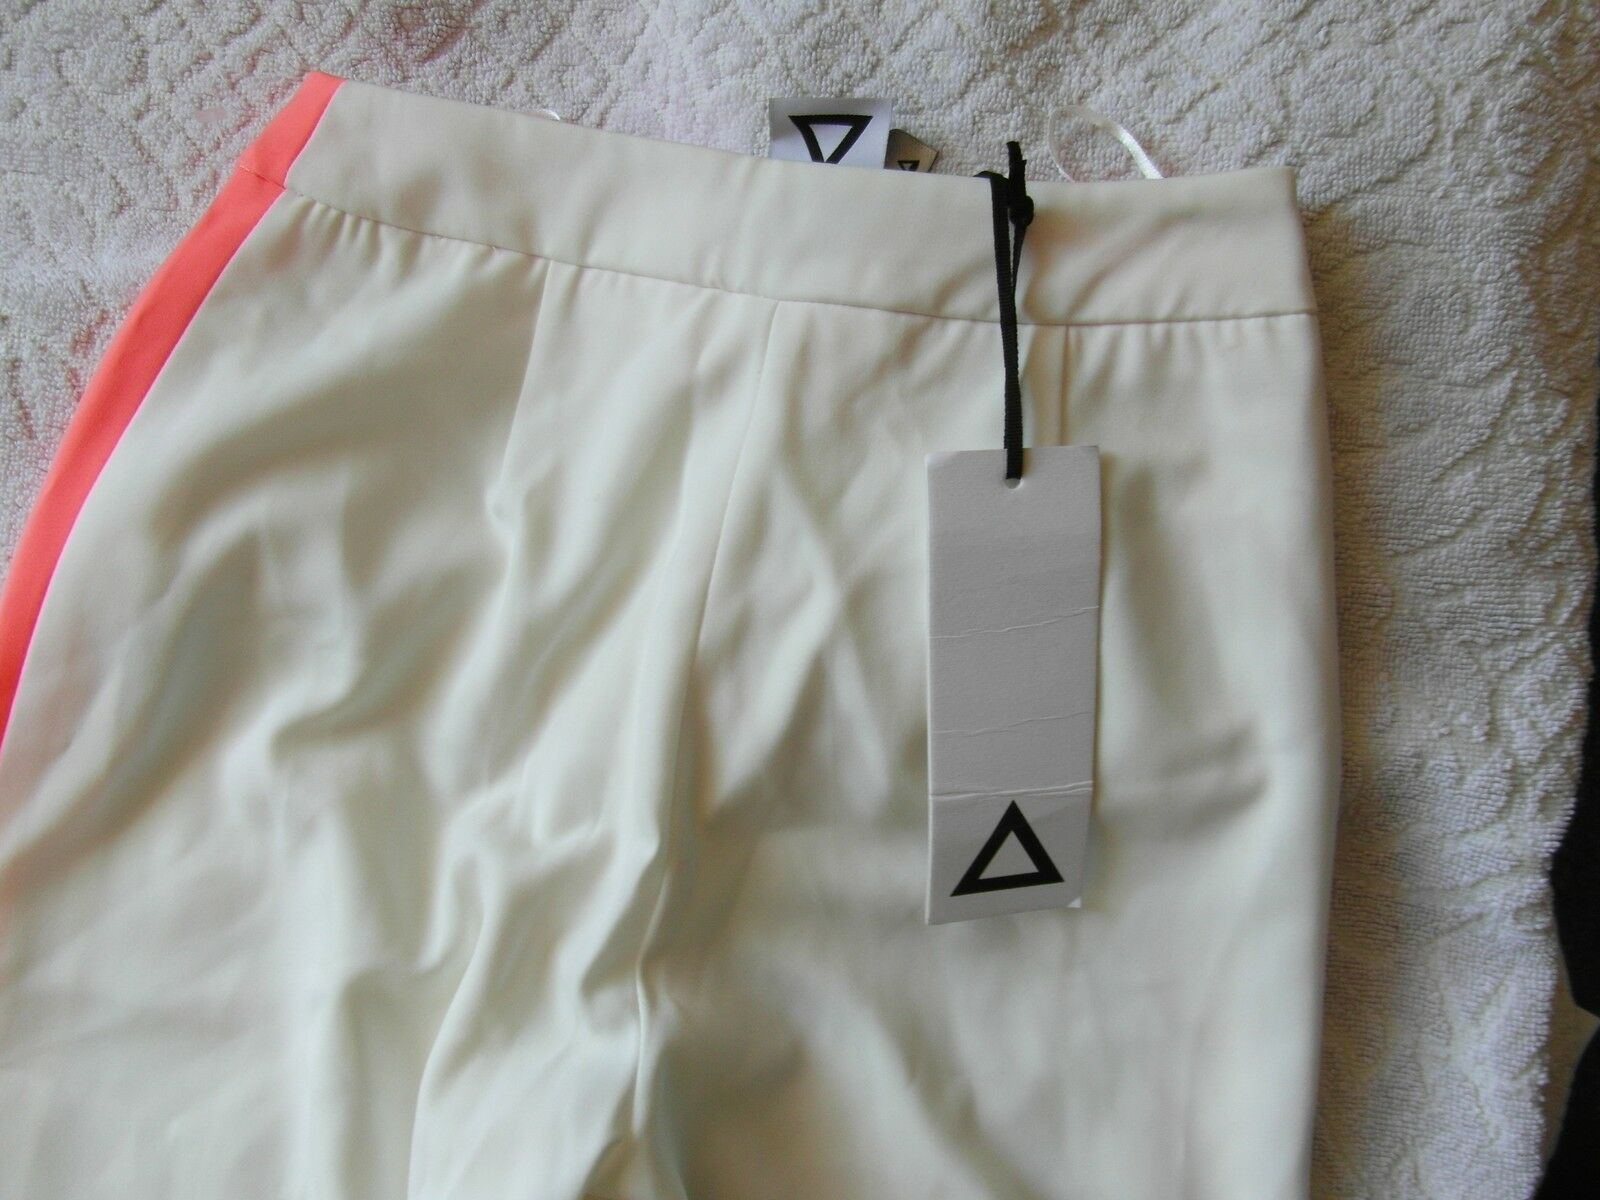 Aqua Aqua Aqua Cream & rosa Regular Fit High Rise MORNAY Pantaloni 24  vita BNWT RRP bccfce